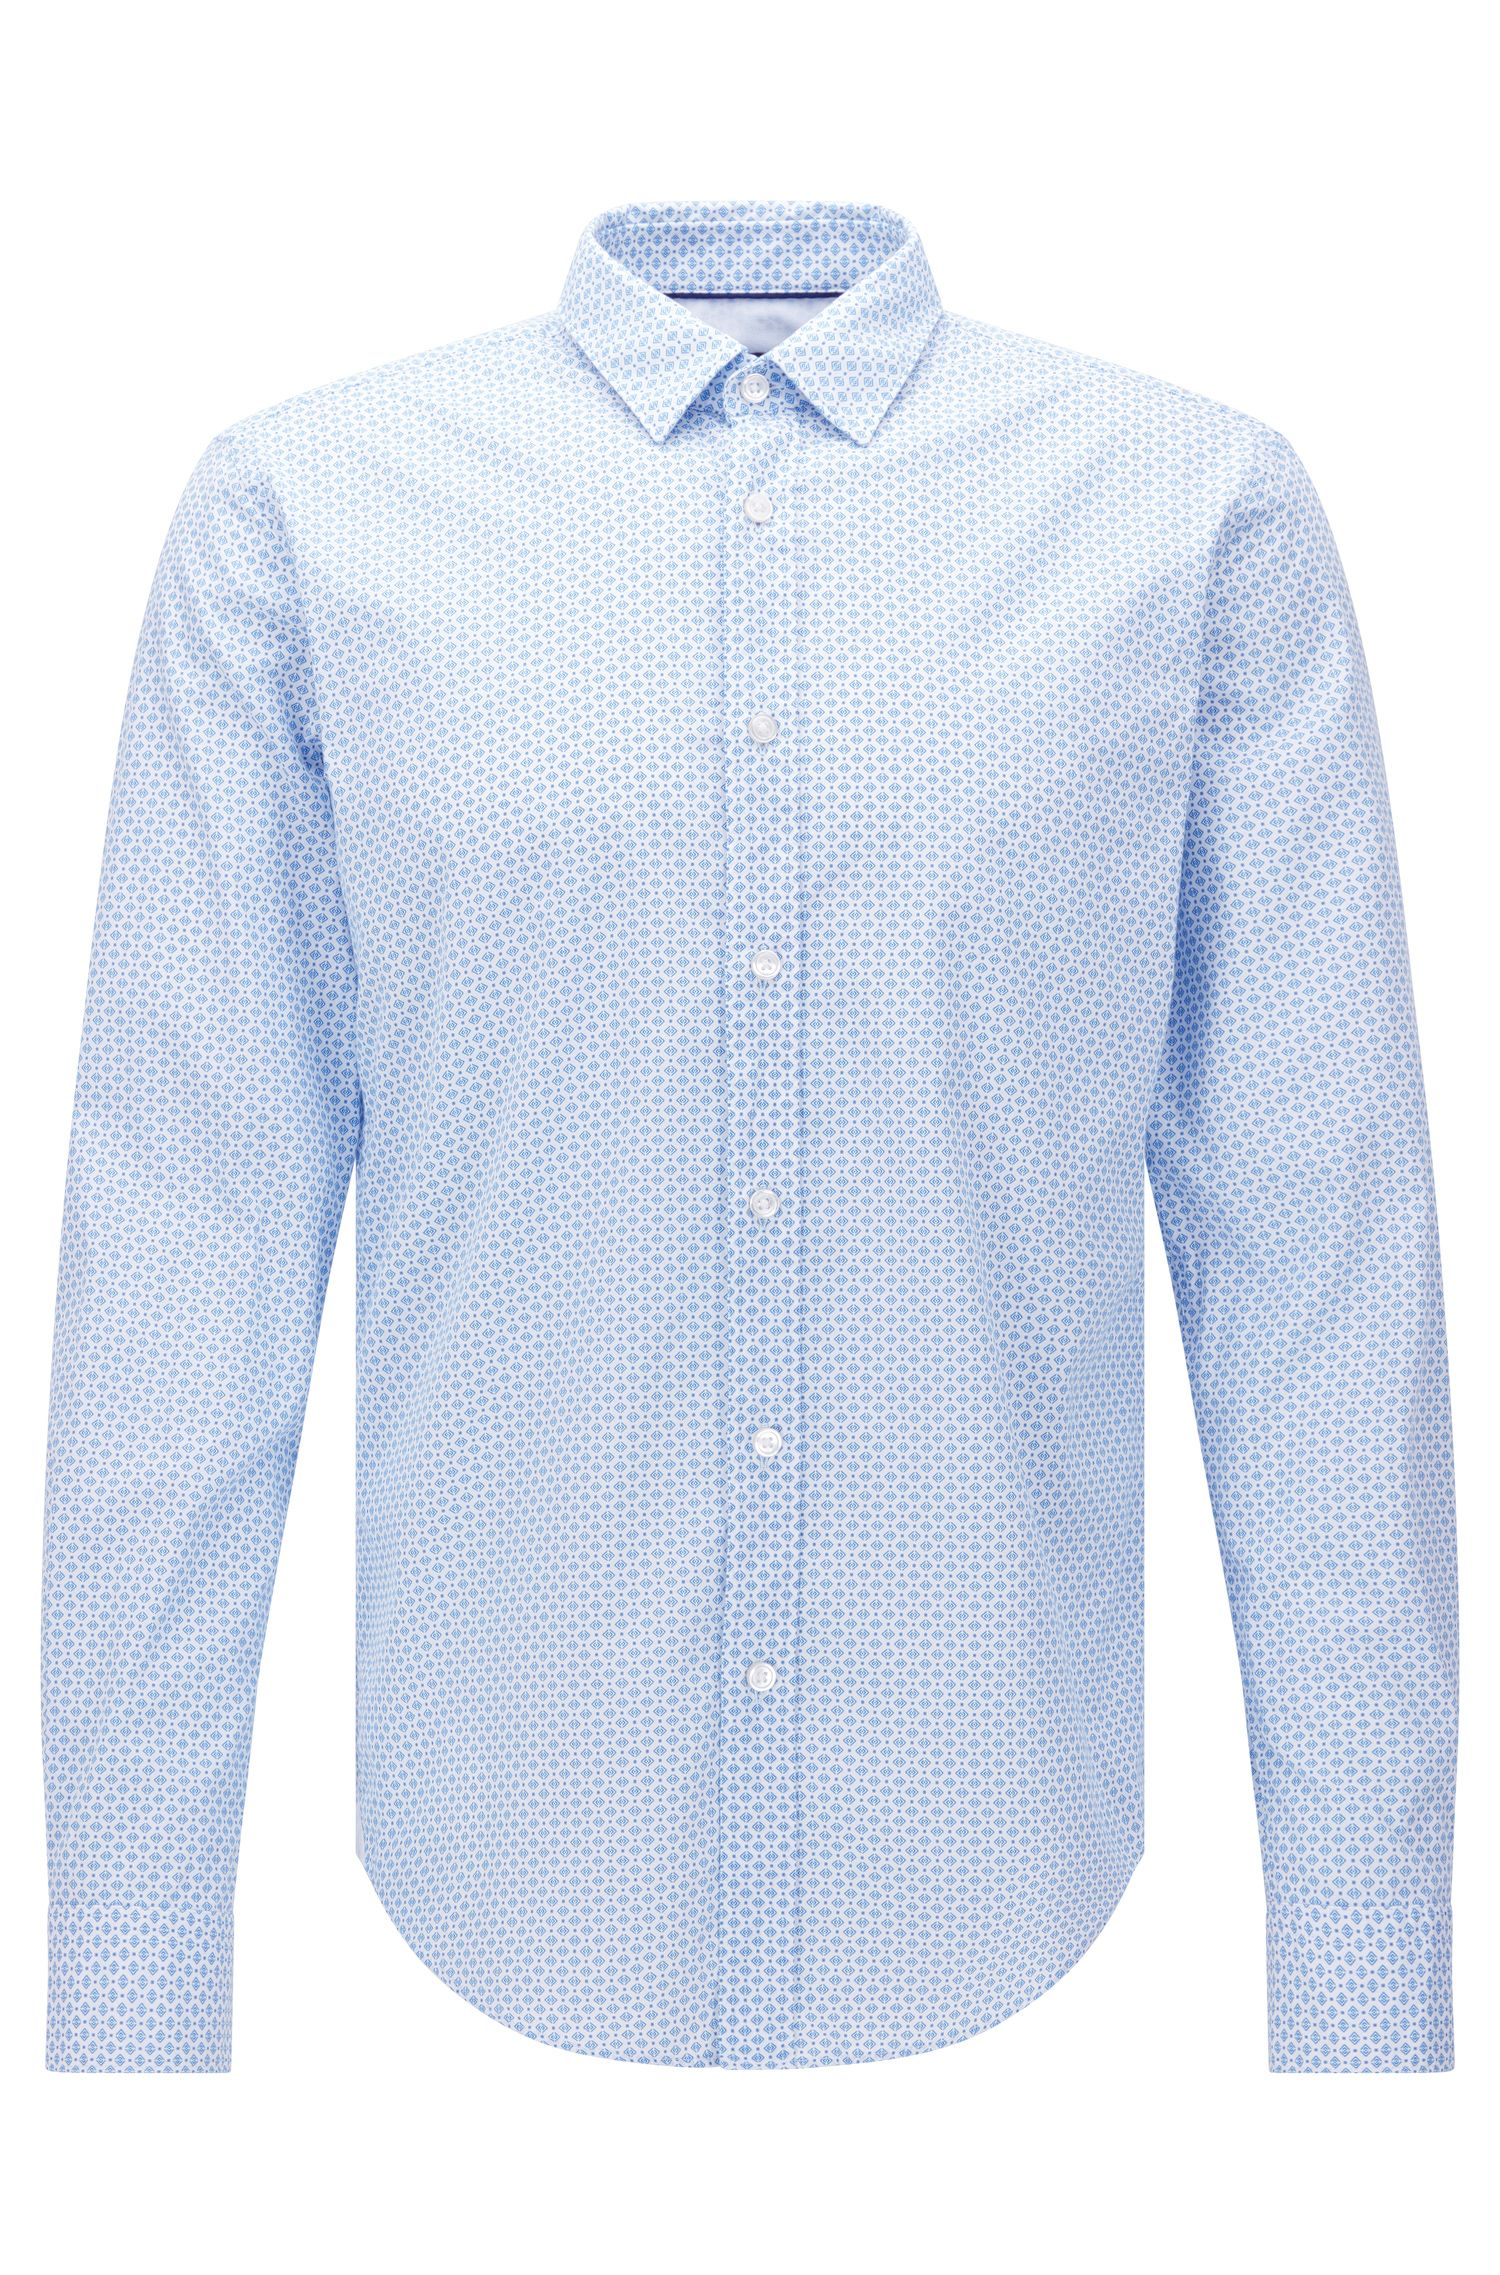 Patterned slim-fit shirt in cotton: 'Ronni_44'